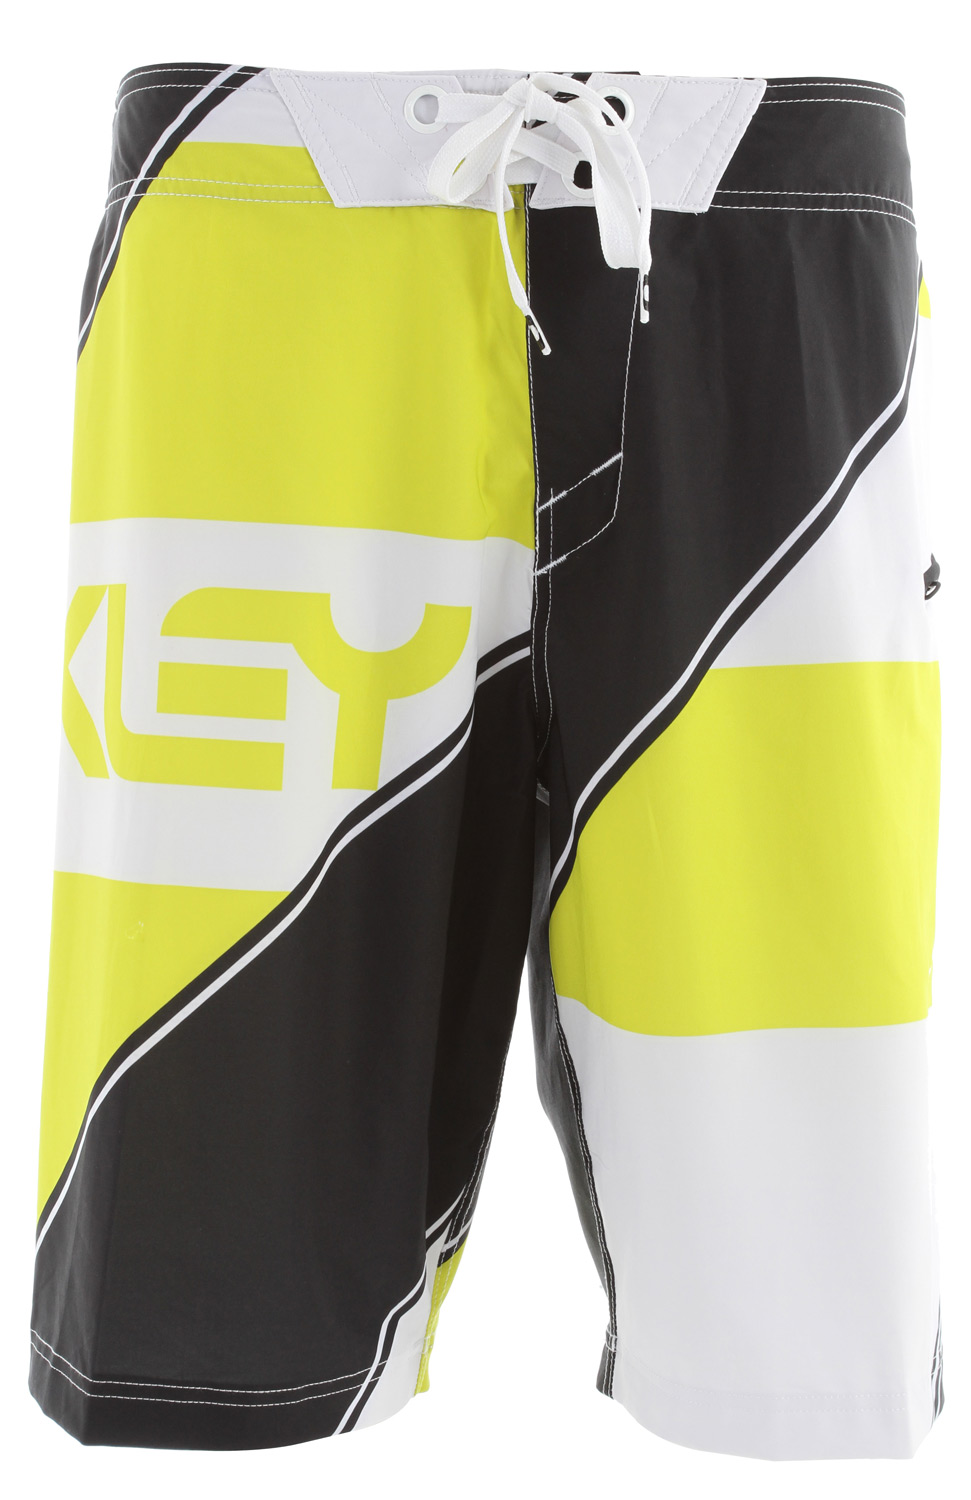 "Surf O Stretch boardshort with engineered sublimated print, zipper fly, side pocket and drawstring closure system.Key Features of the Oakley Intense Boardshorts: 91% polyester, 9% spandex 21"" outseam - $65.00"